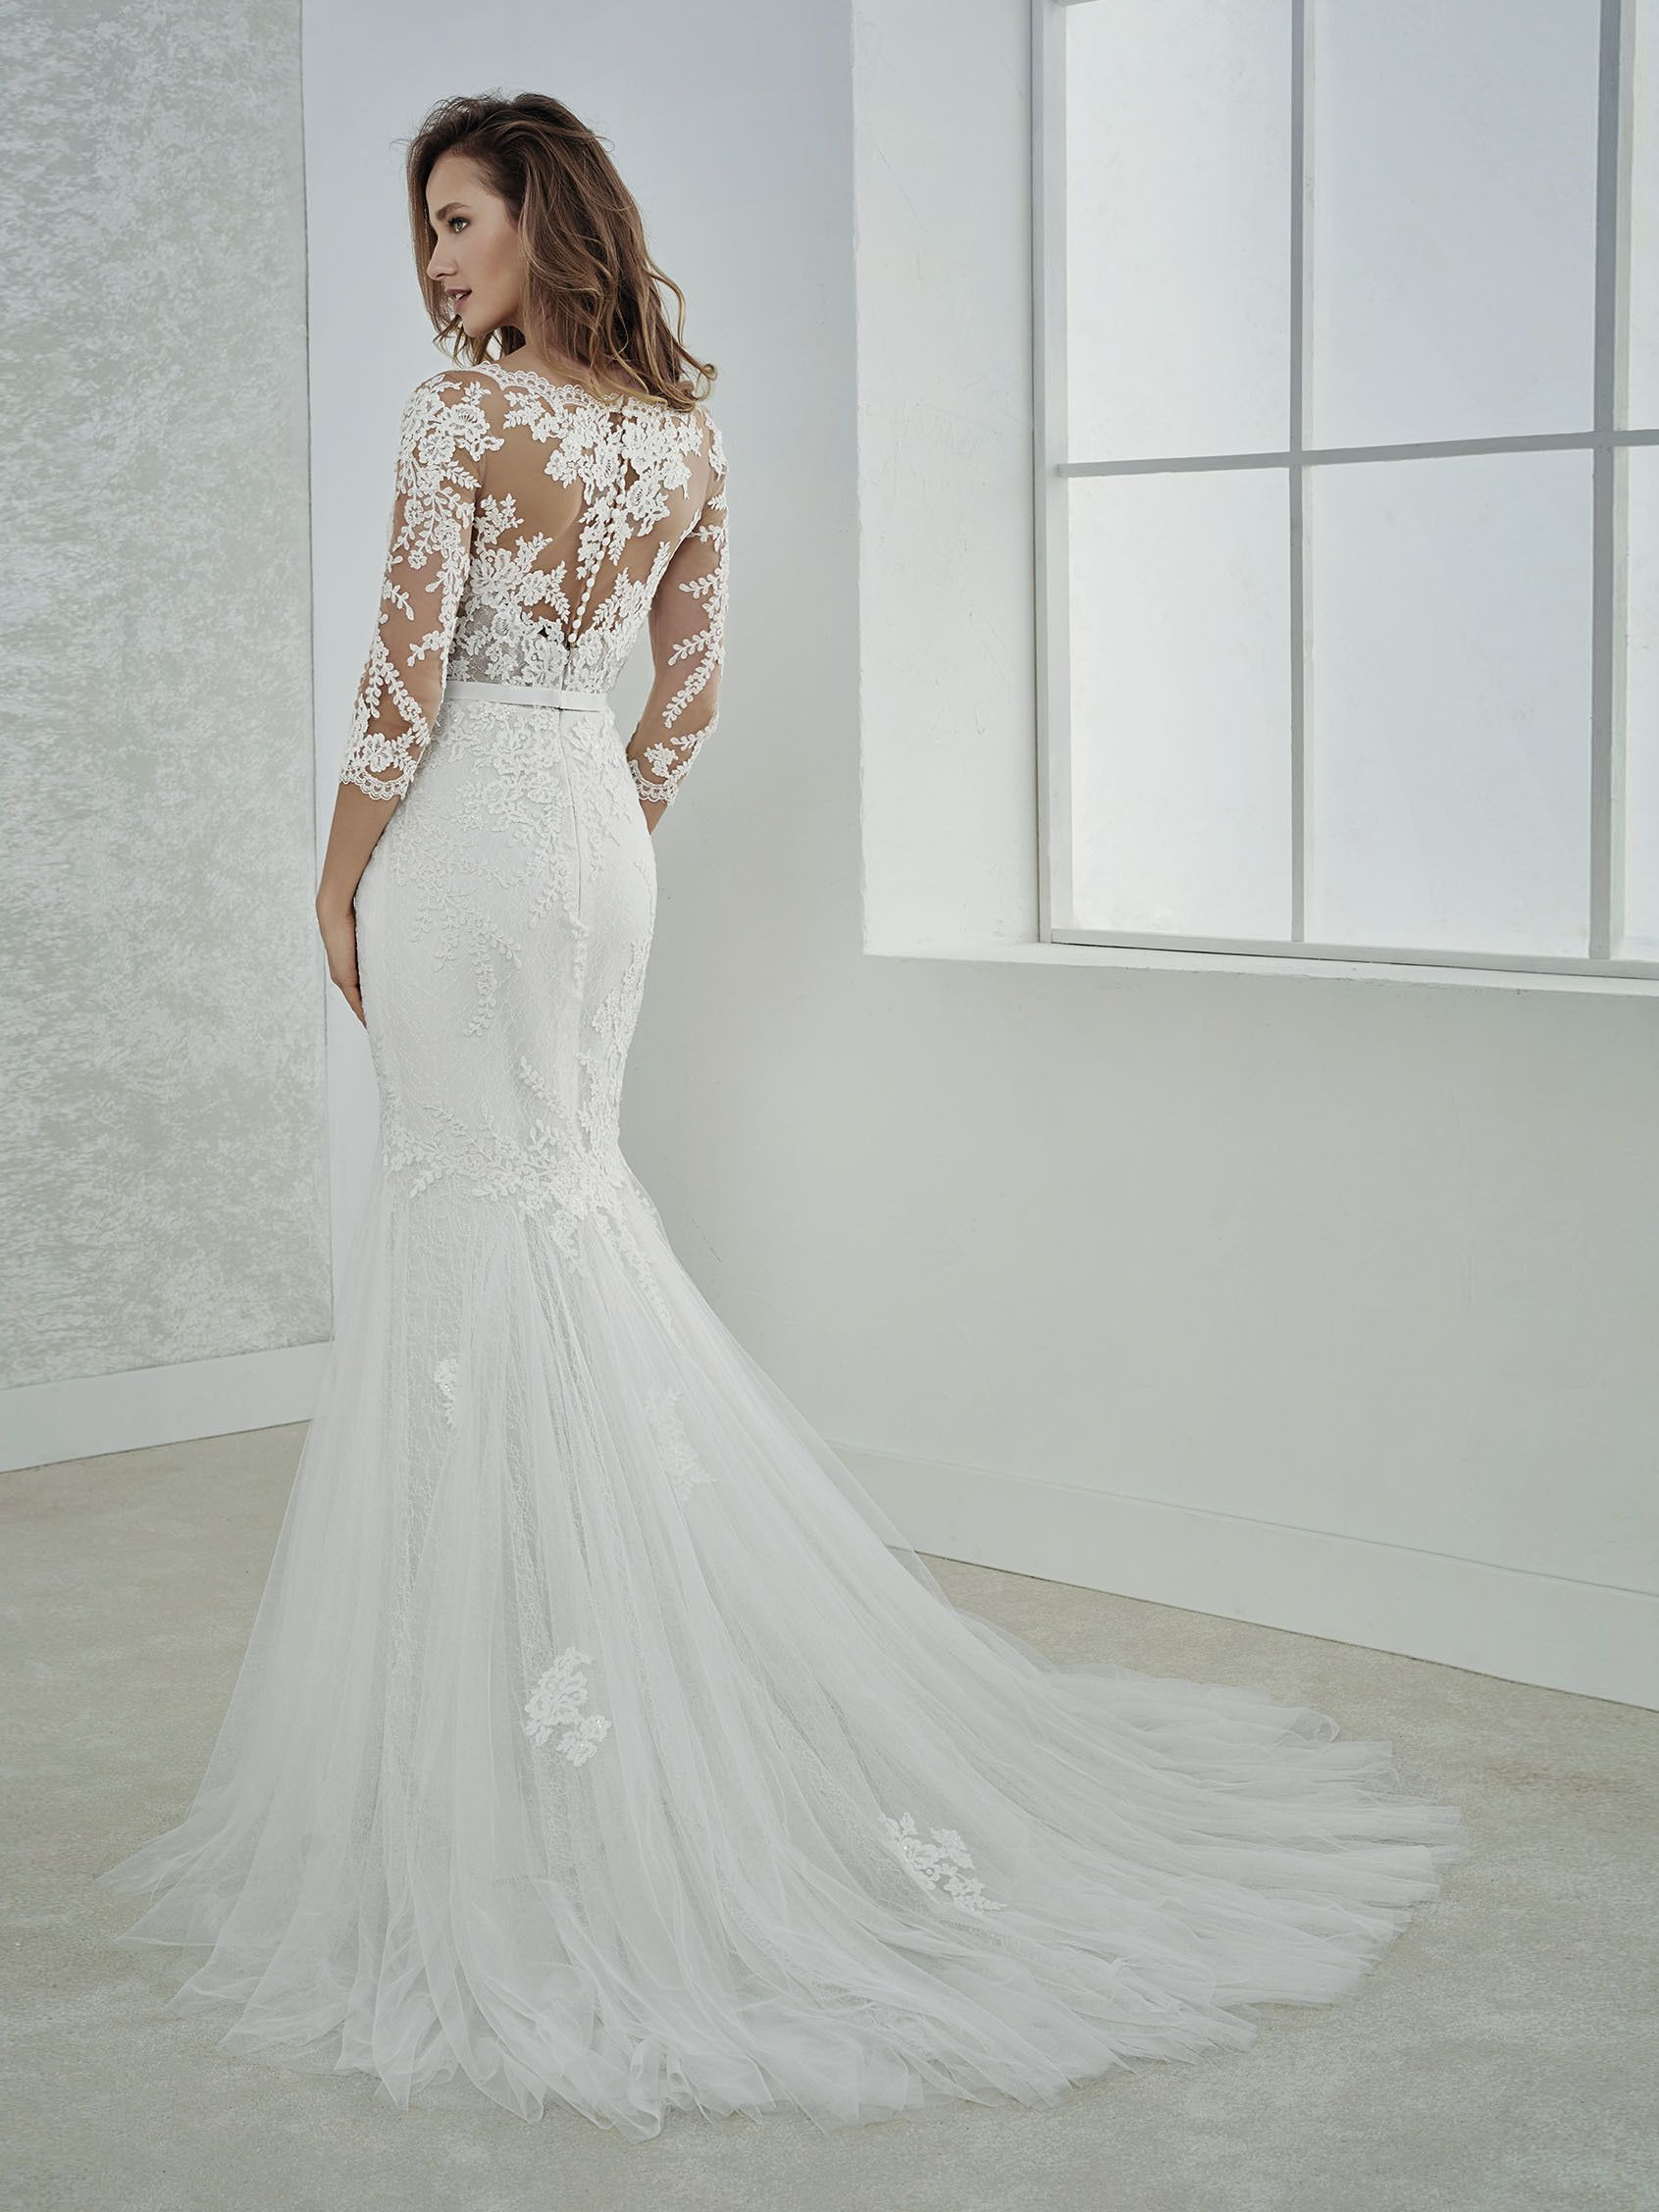 5cdc07bc96 FE-Wedding dress with beading